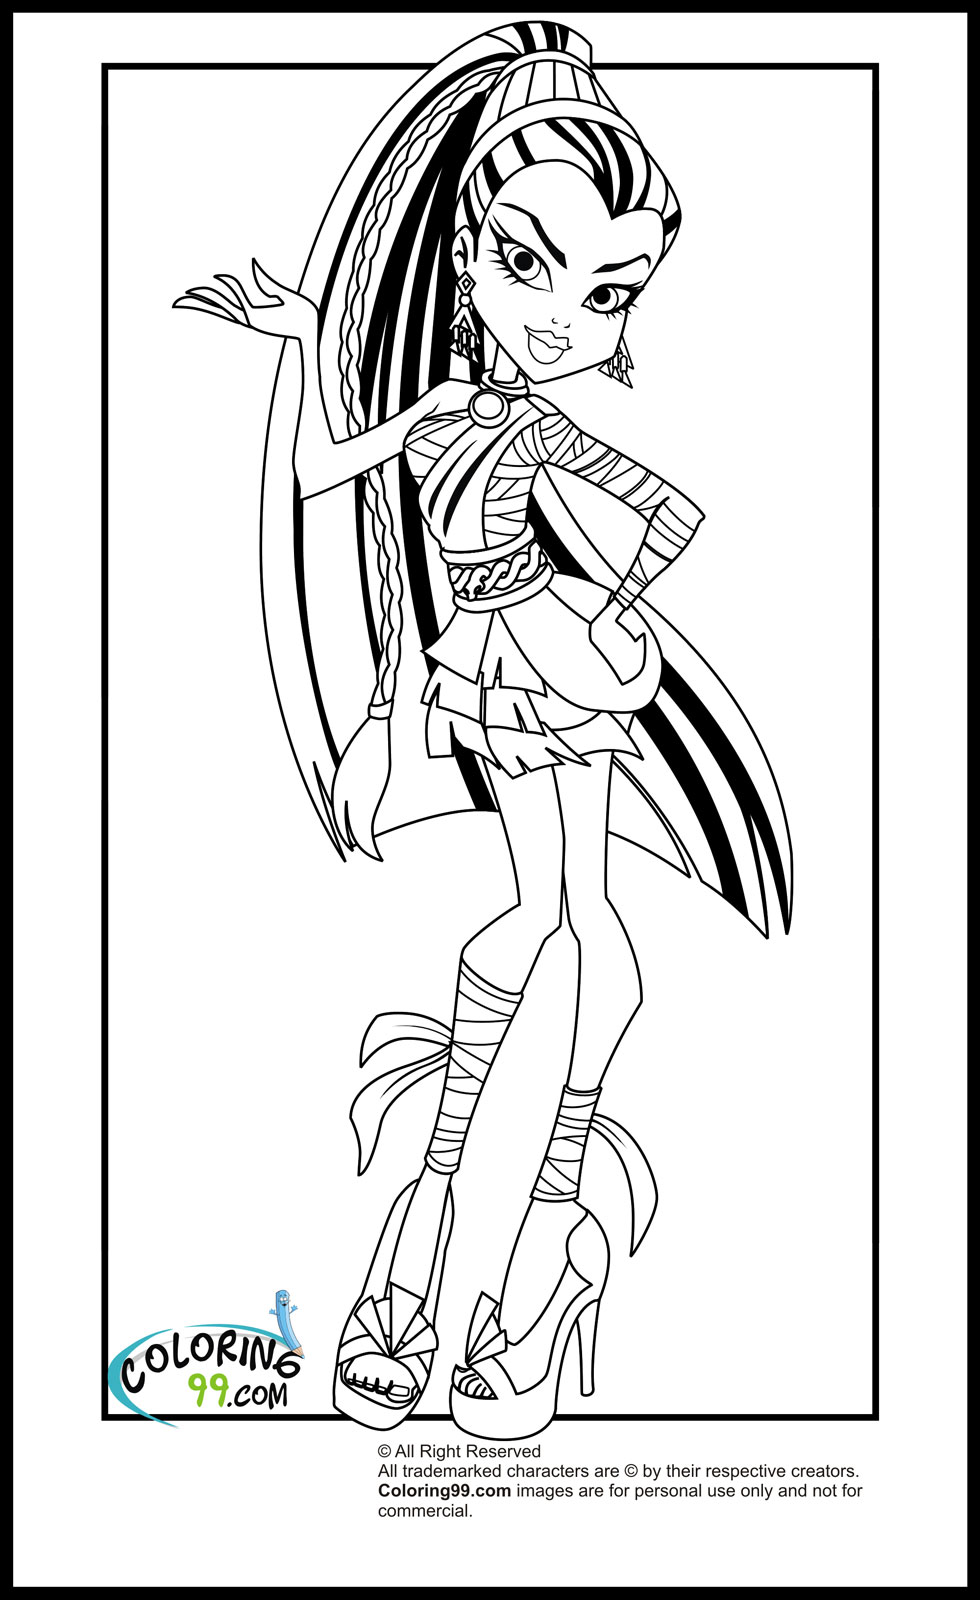 monster high free coloring pages to print coloring pages monster high coloring pages free and printable high pages print to free monster coloring